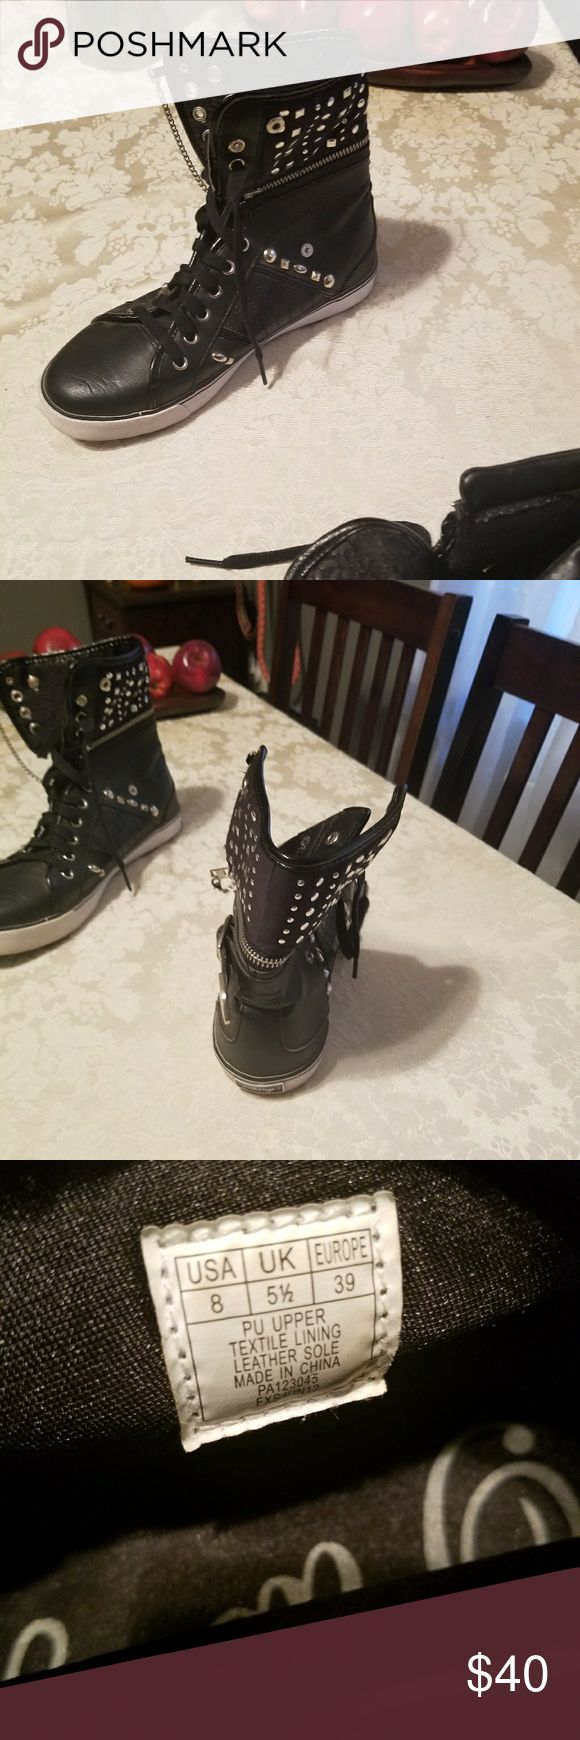 Pastry cheetah black changeable sneakers Barley used. Can take high tops off or wear on. Cute cheetah print inside pastry Shoes Sneakers